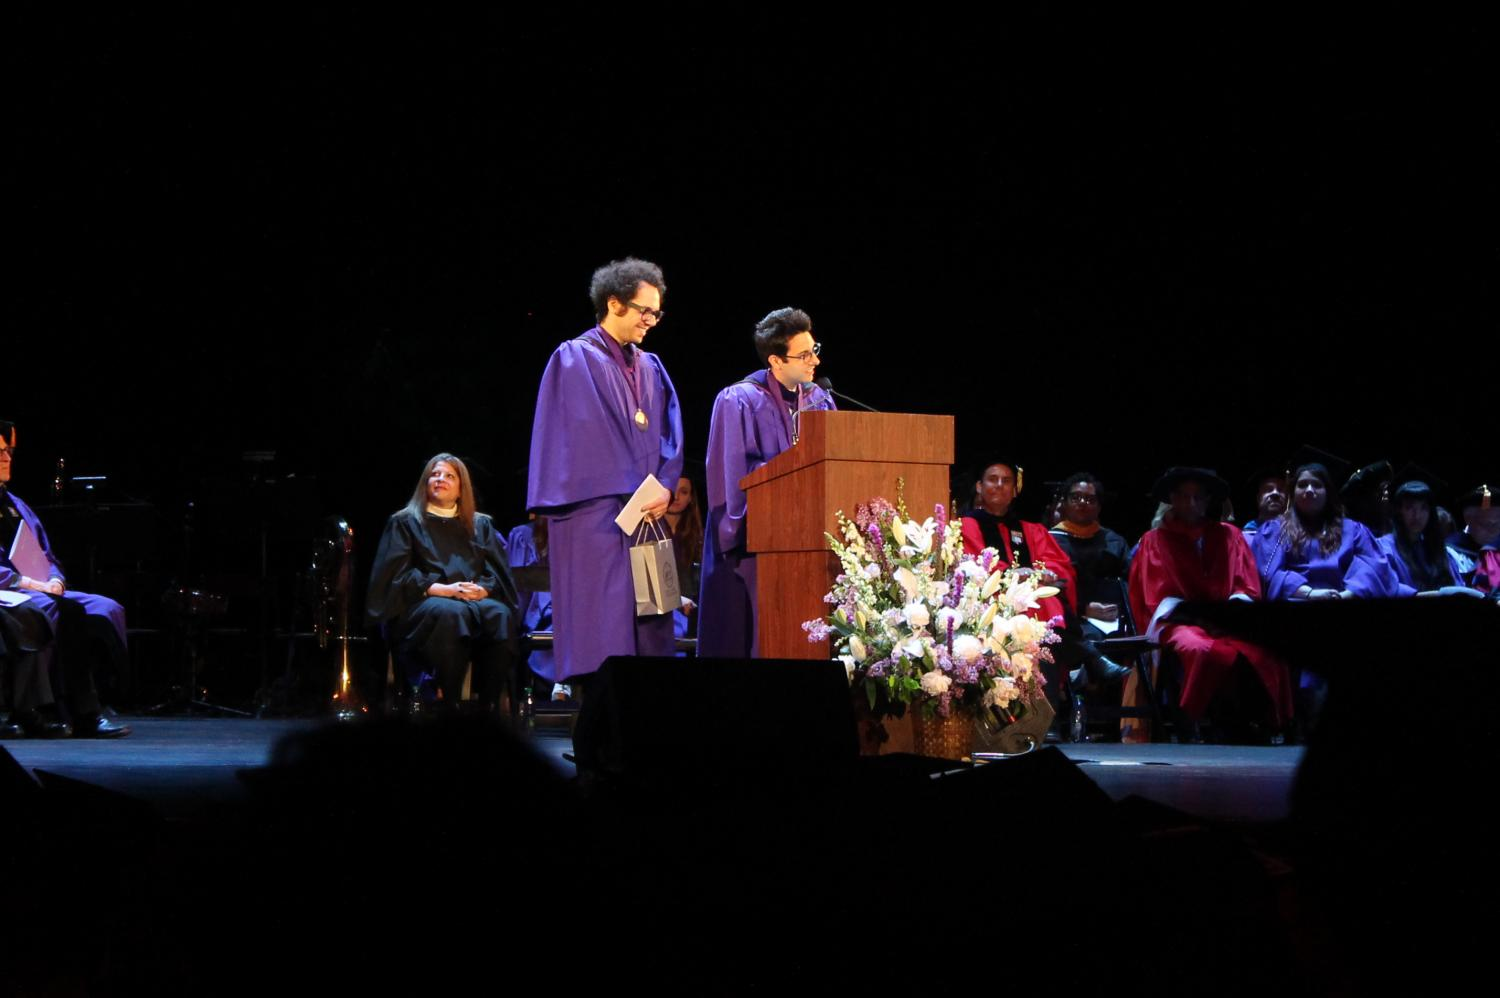 Steinhardt alumni Ian Axel and Chad King, who make up the platinum-selling music group A Great Big World, accepted the 2017 Dorothy Height Distinguished Alumni Award at this year's Steinhardt Undergraduate Commencement ceremony. The duo graduated in 2007 from the school's Music Business program.